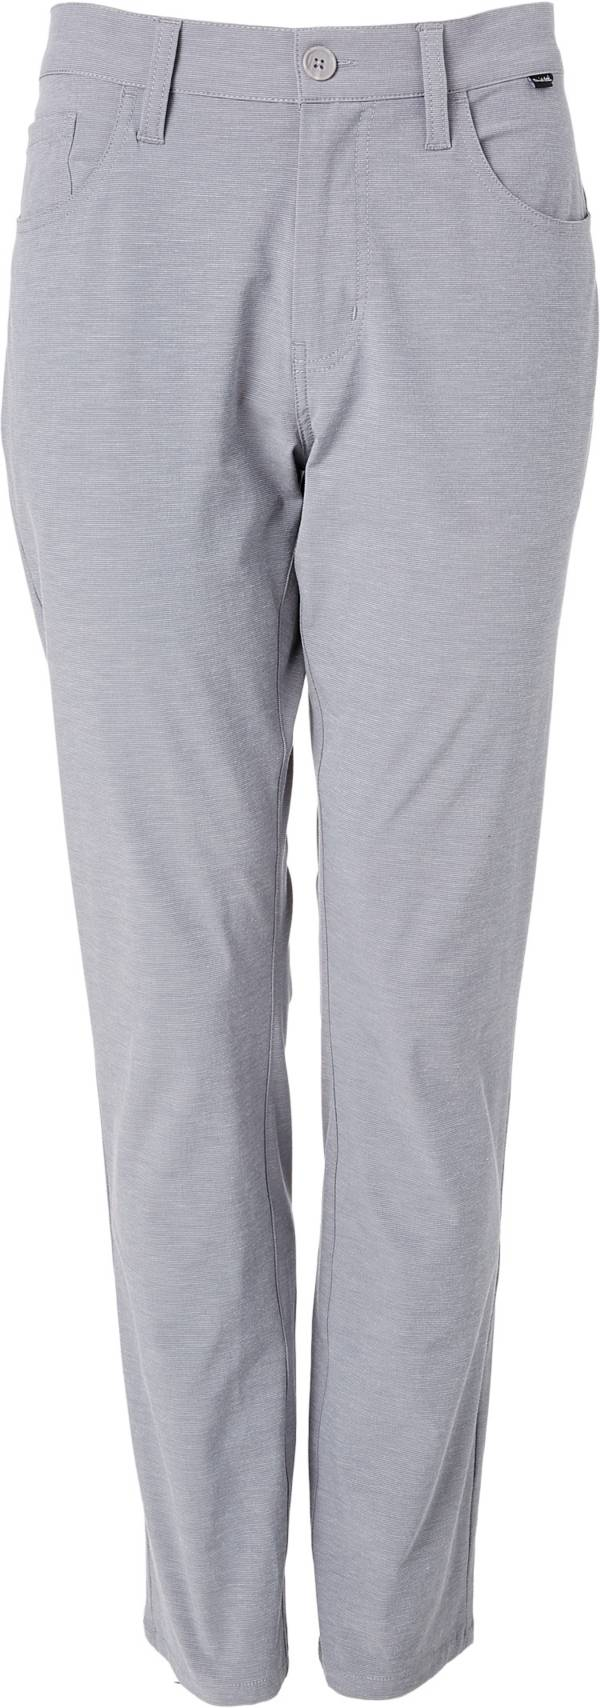 TravisMathew Men's Slack Golf Pants product image